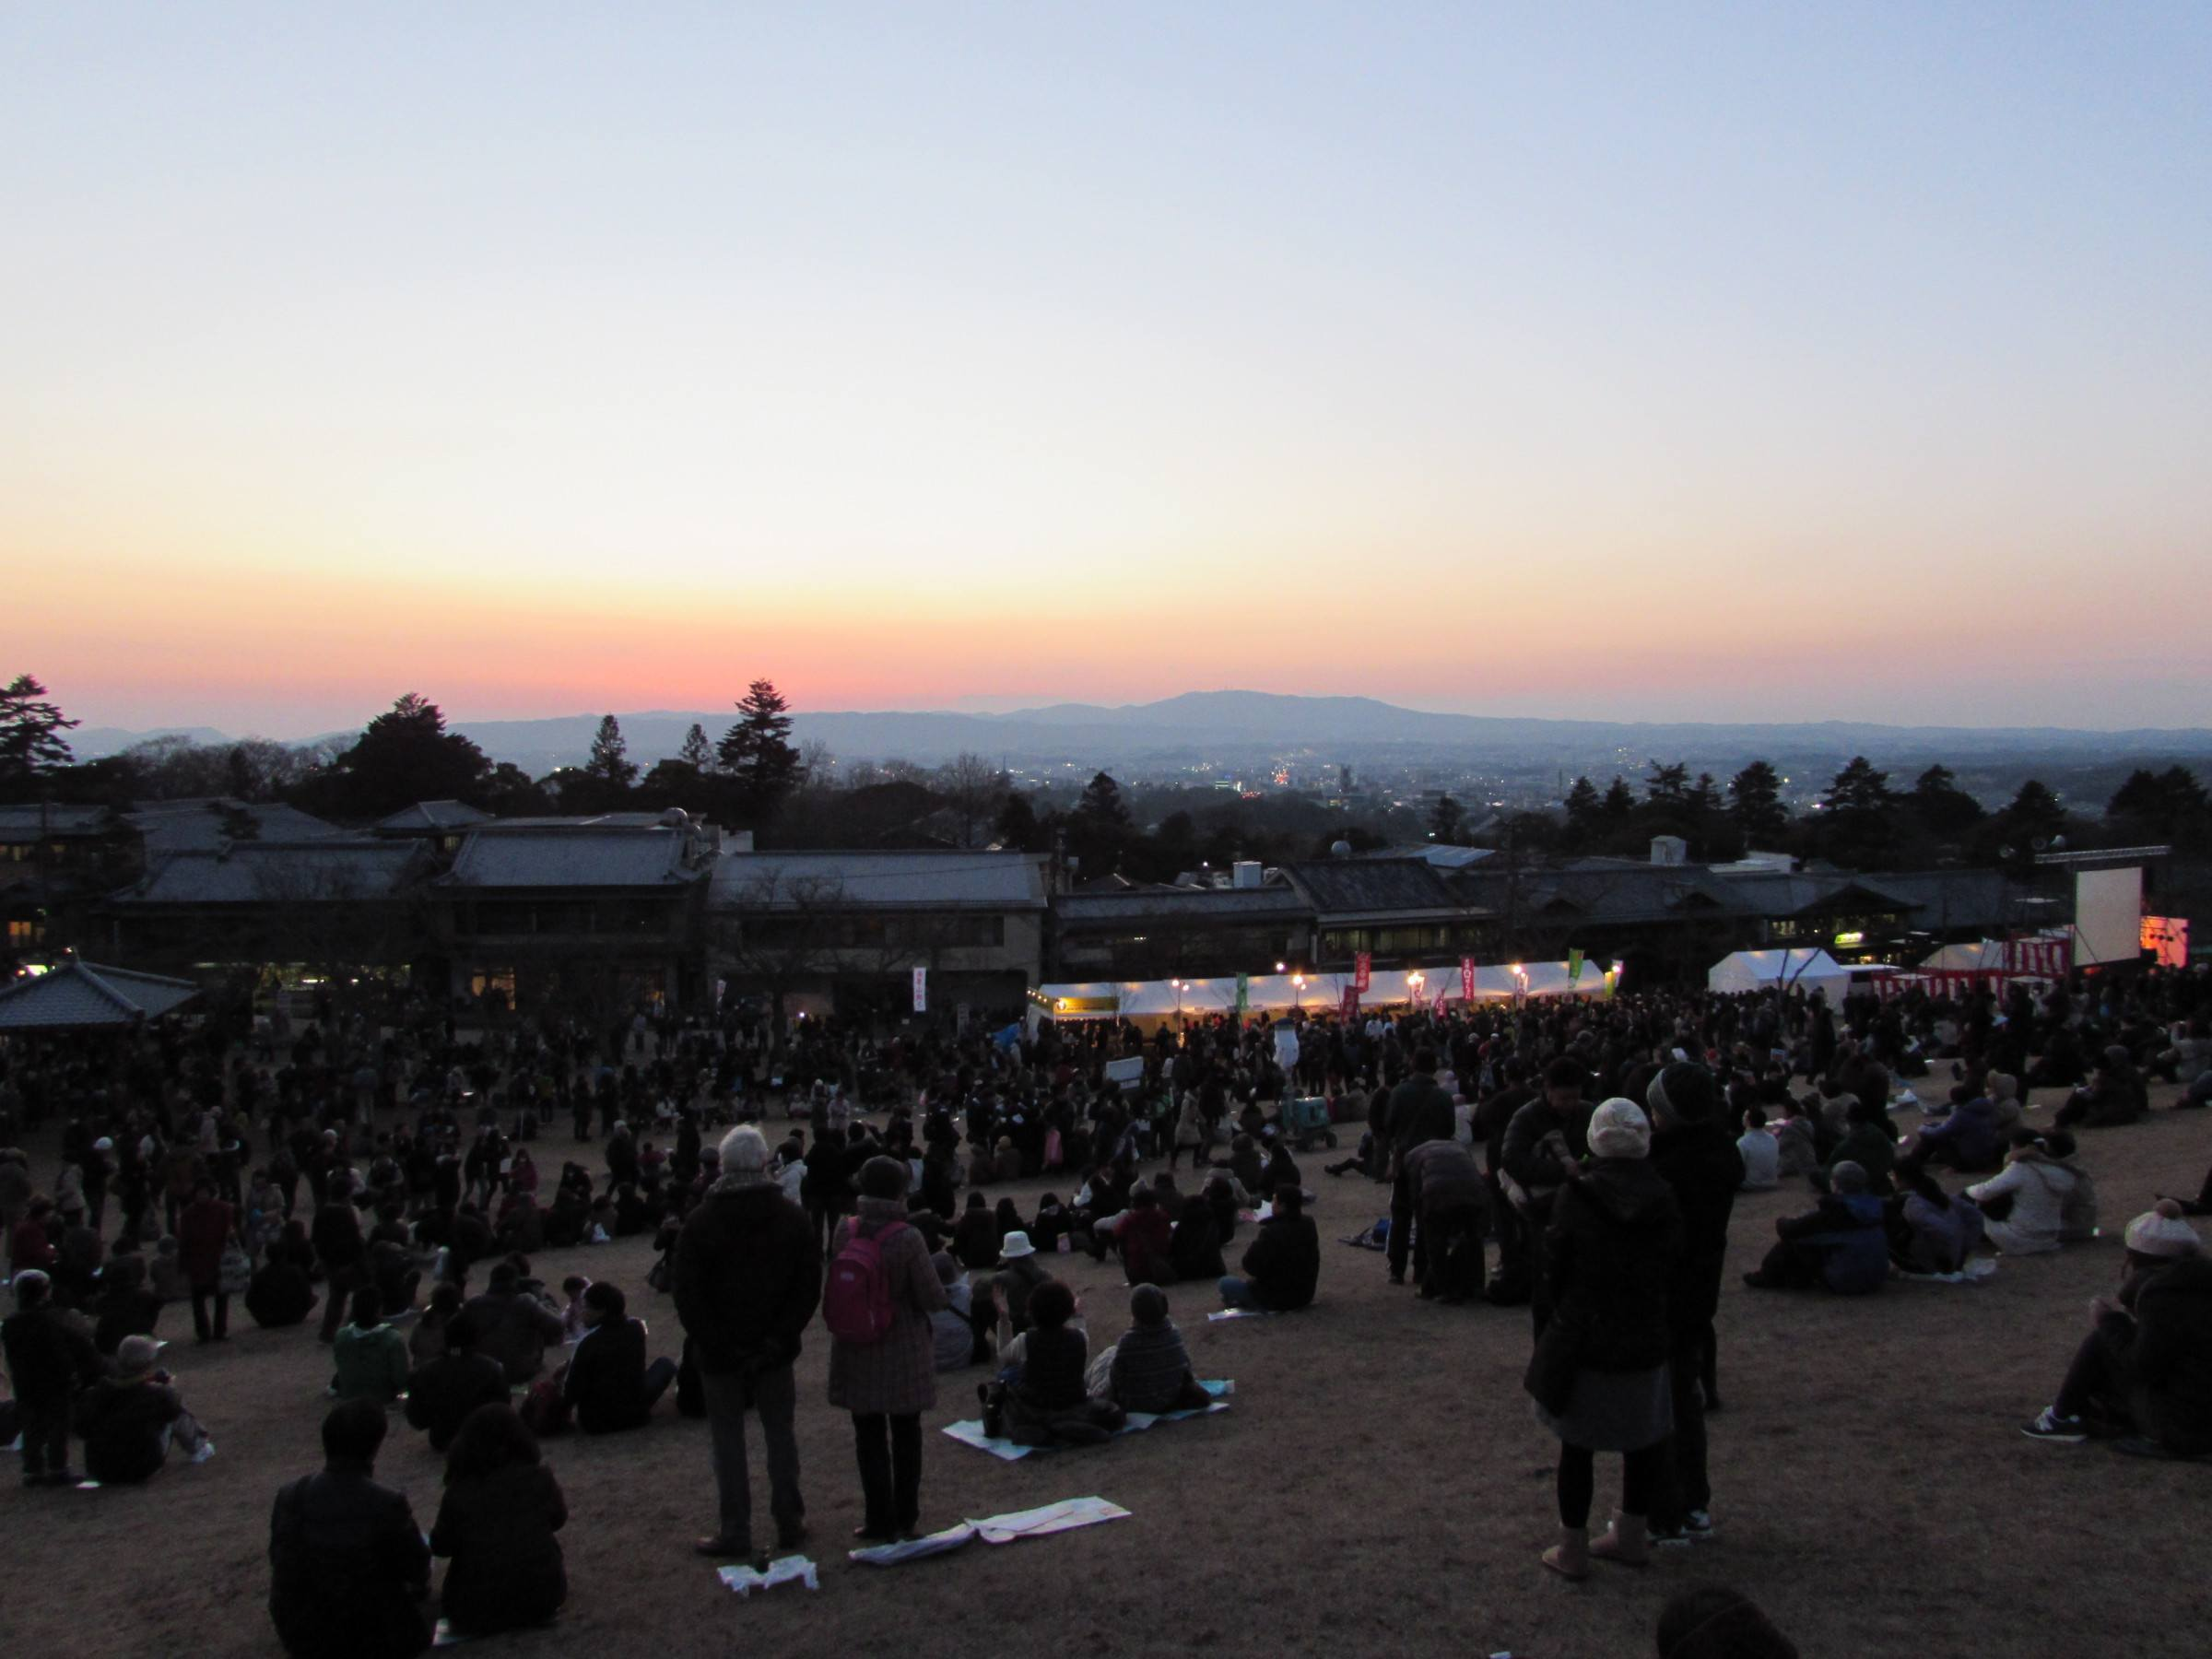 While we were waiting for the sun to set, there were fantastic views across Nara to be had from the side of the mountain!